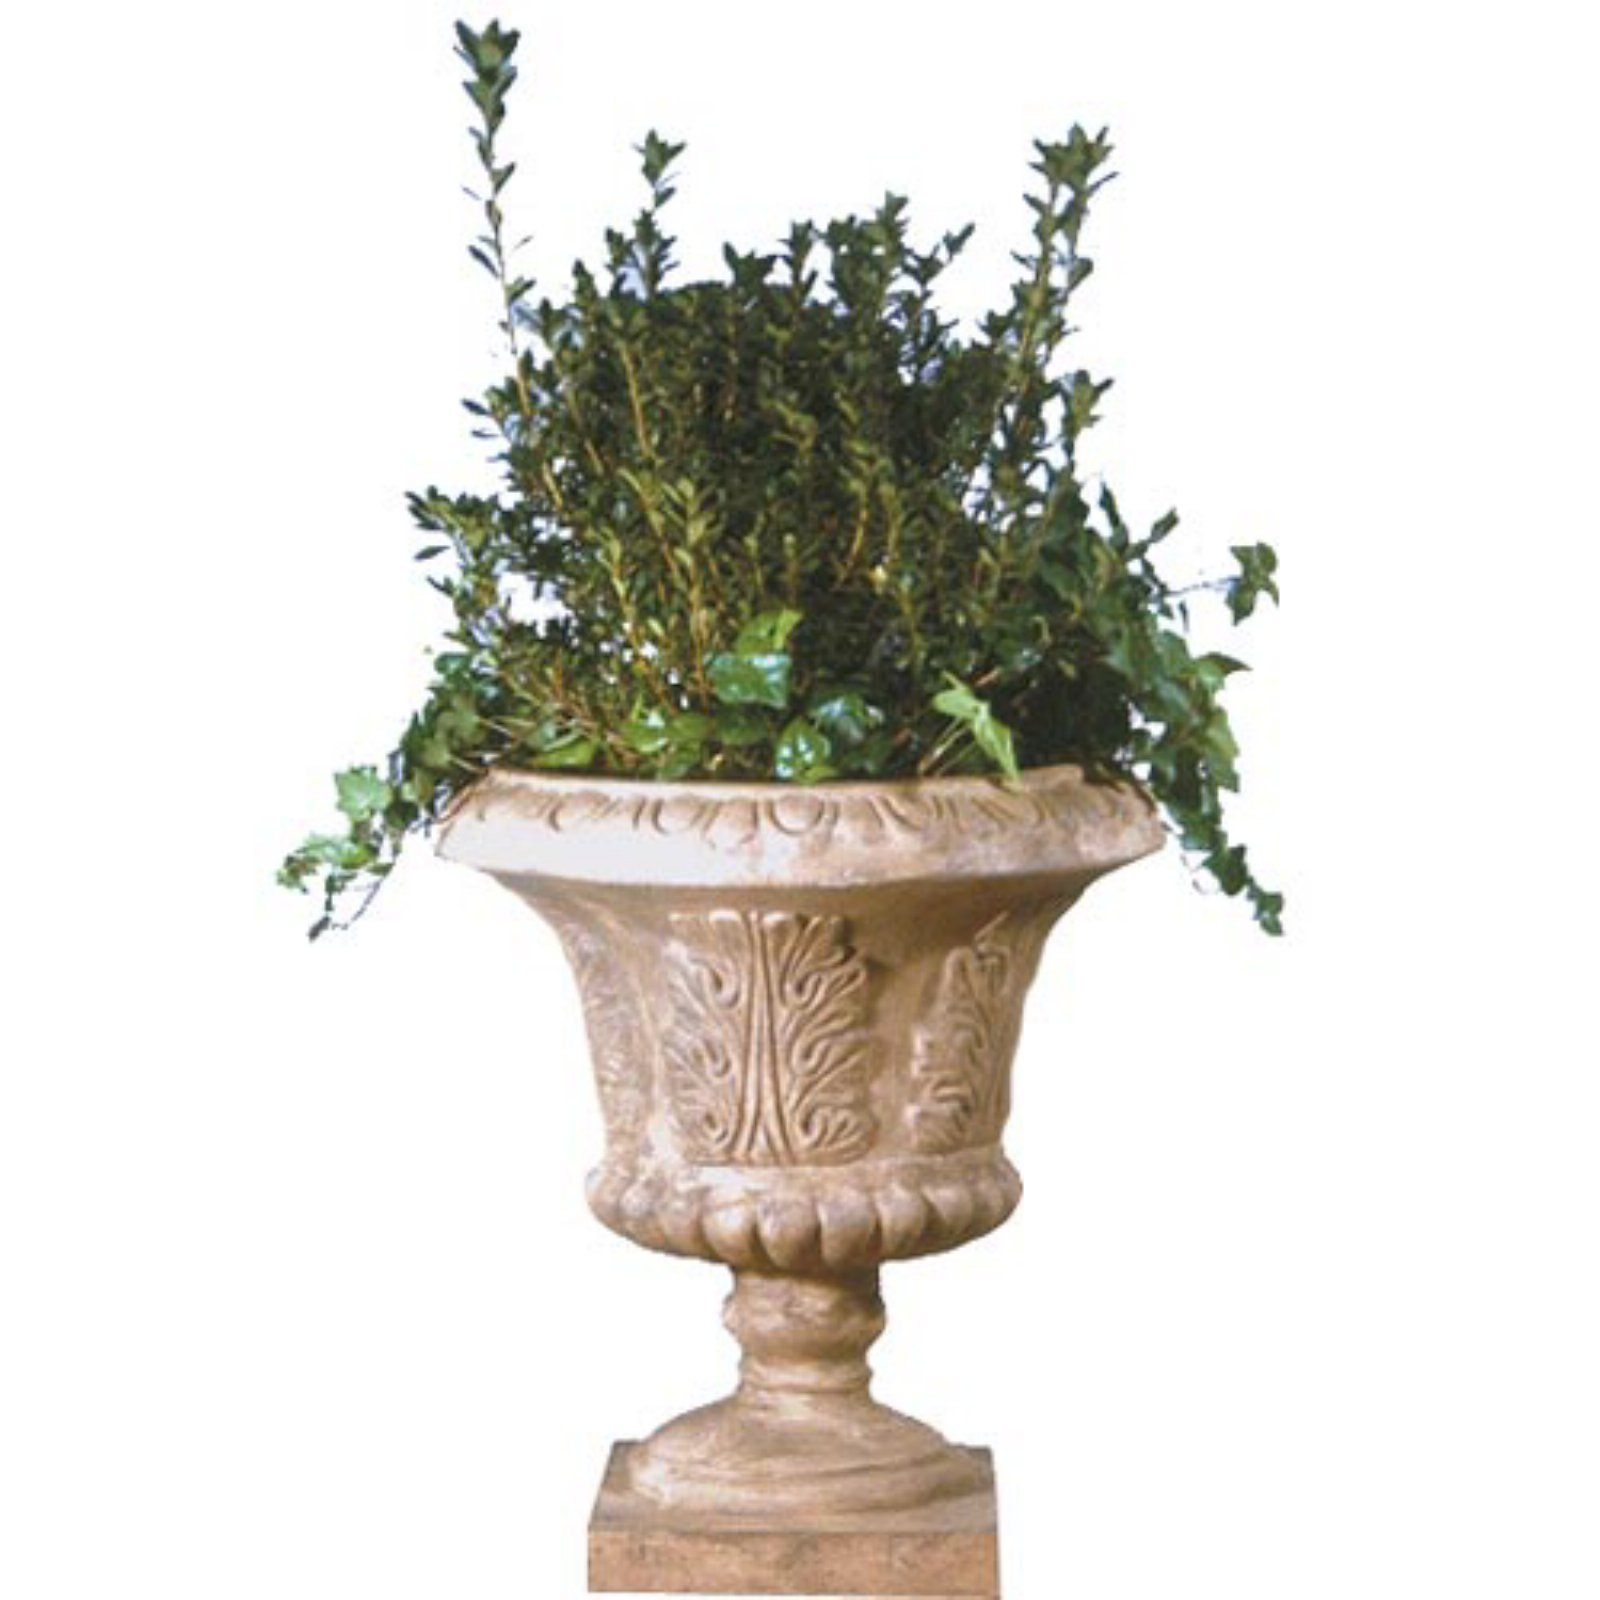 Charmant Large Round Resin Tuscan Leaf Urn Planter